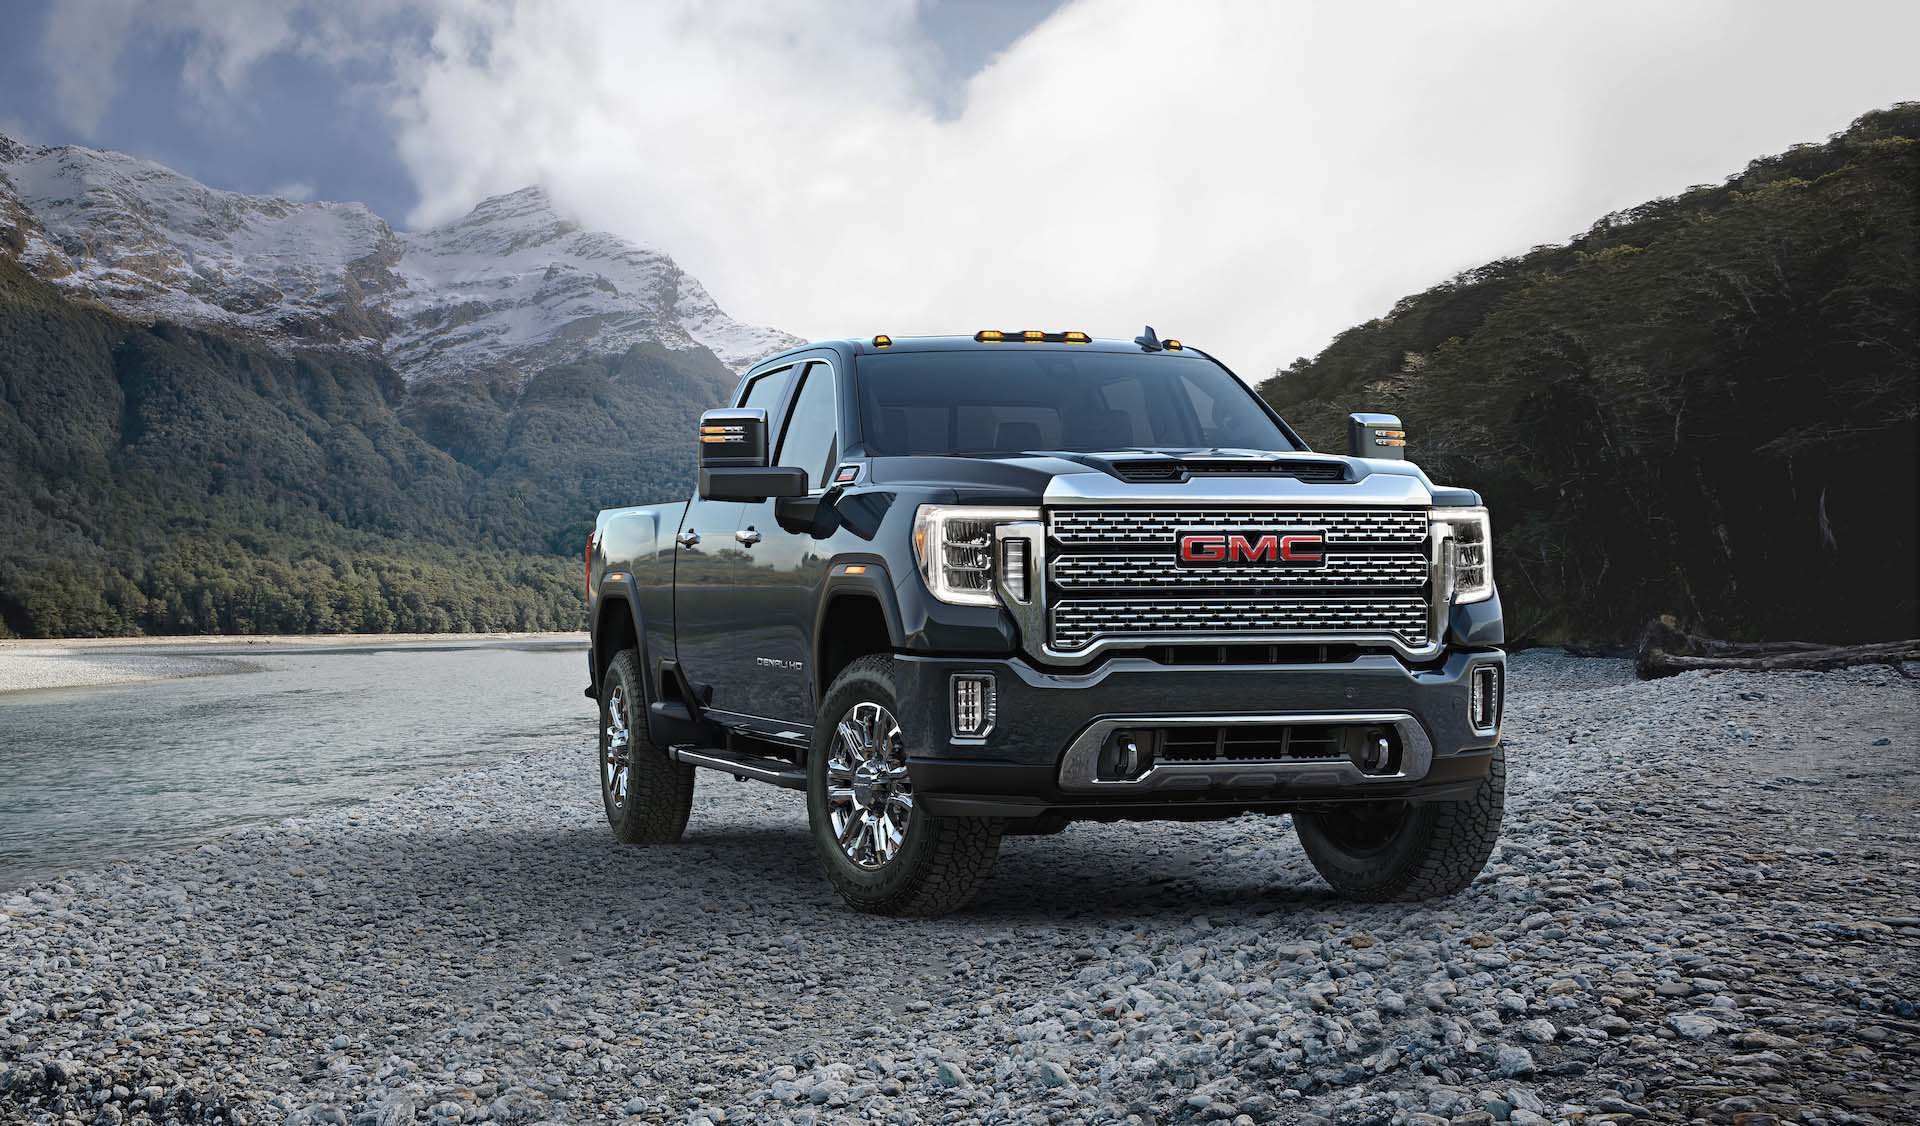 93 All New Gmc Sierra 2020 Price Interior by Gmc Sierra 2020 Price